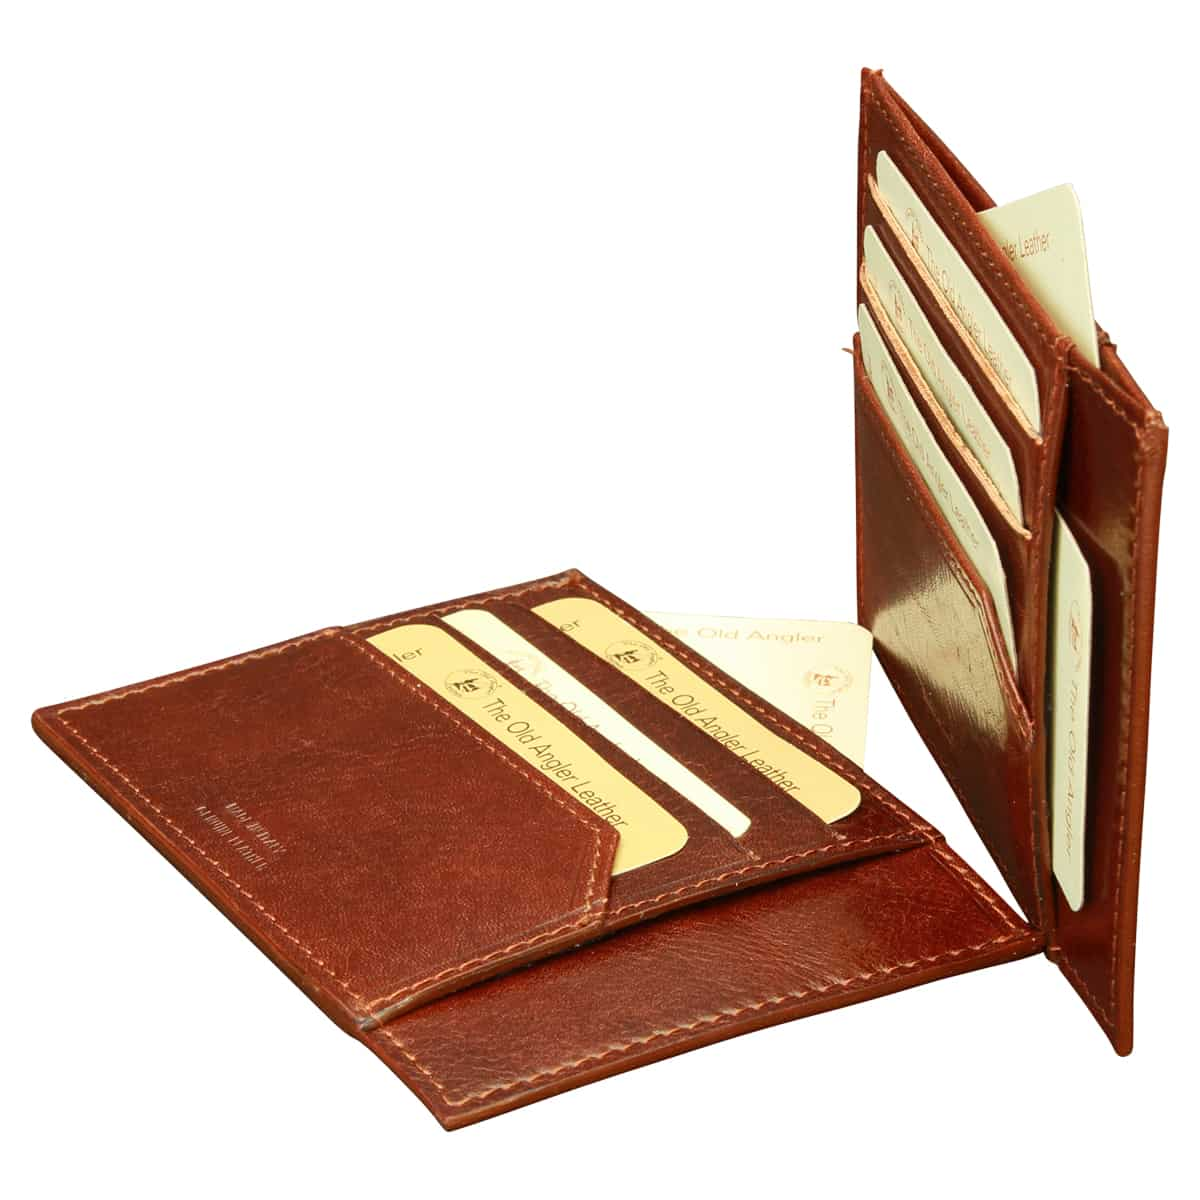 Italian leather credit card holder - Brown | 804005MA E | Old Angler Firenze